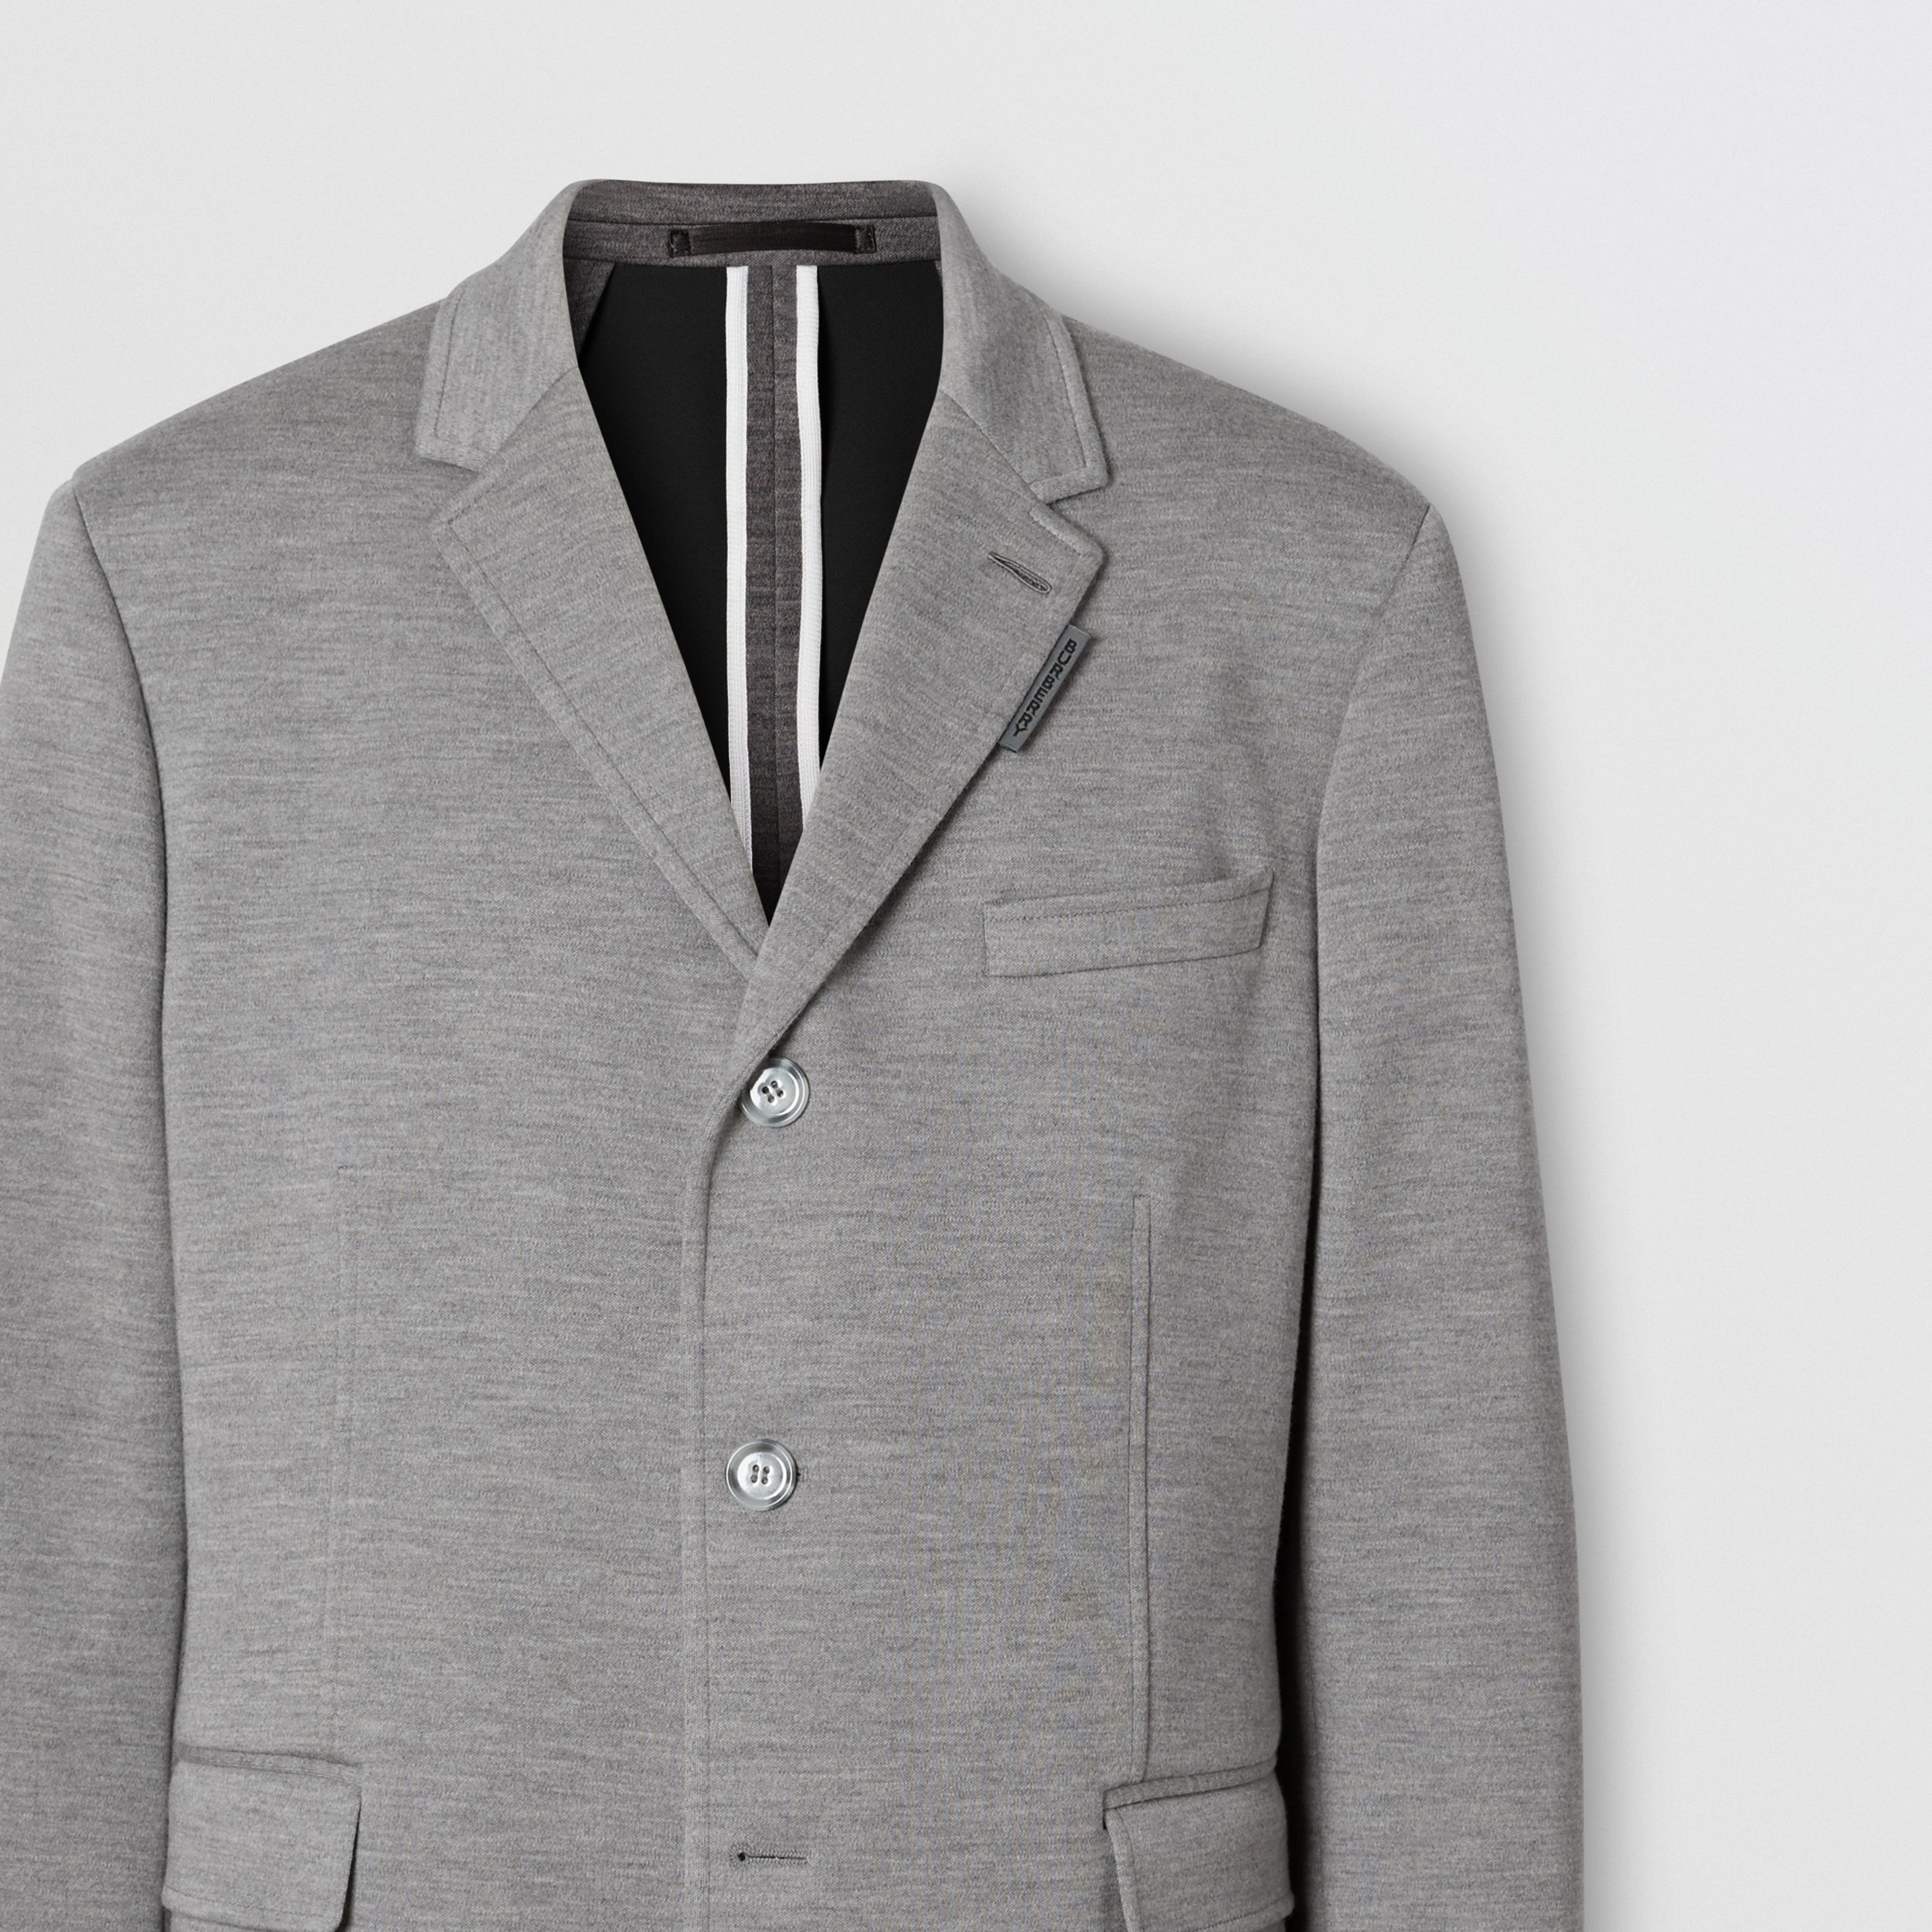 Relaxed Fit Wool Jersey Tailored Jacket in Cloud Grey - Men | Burberry - 3